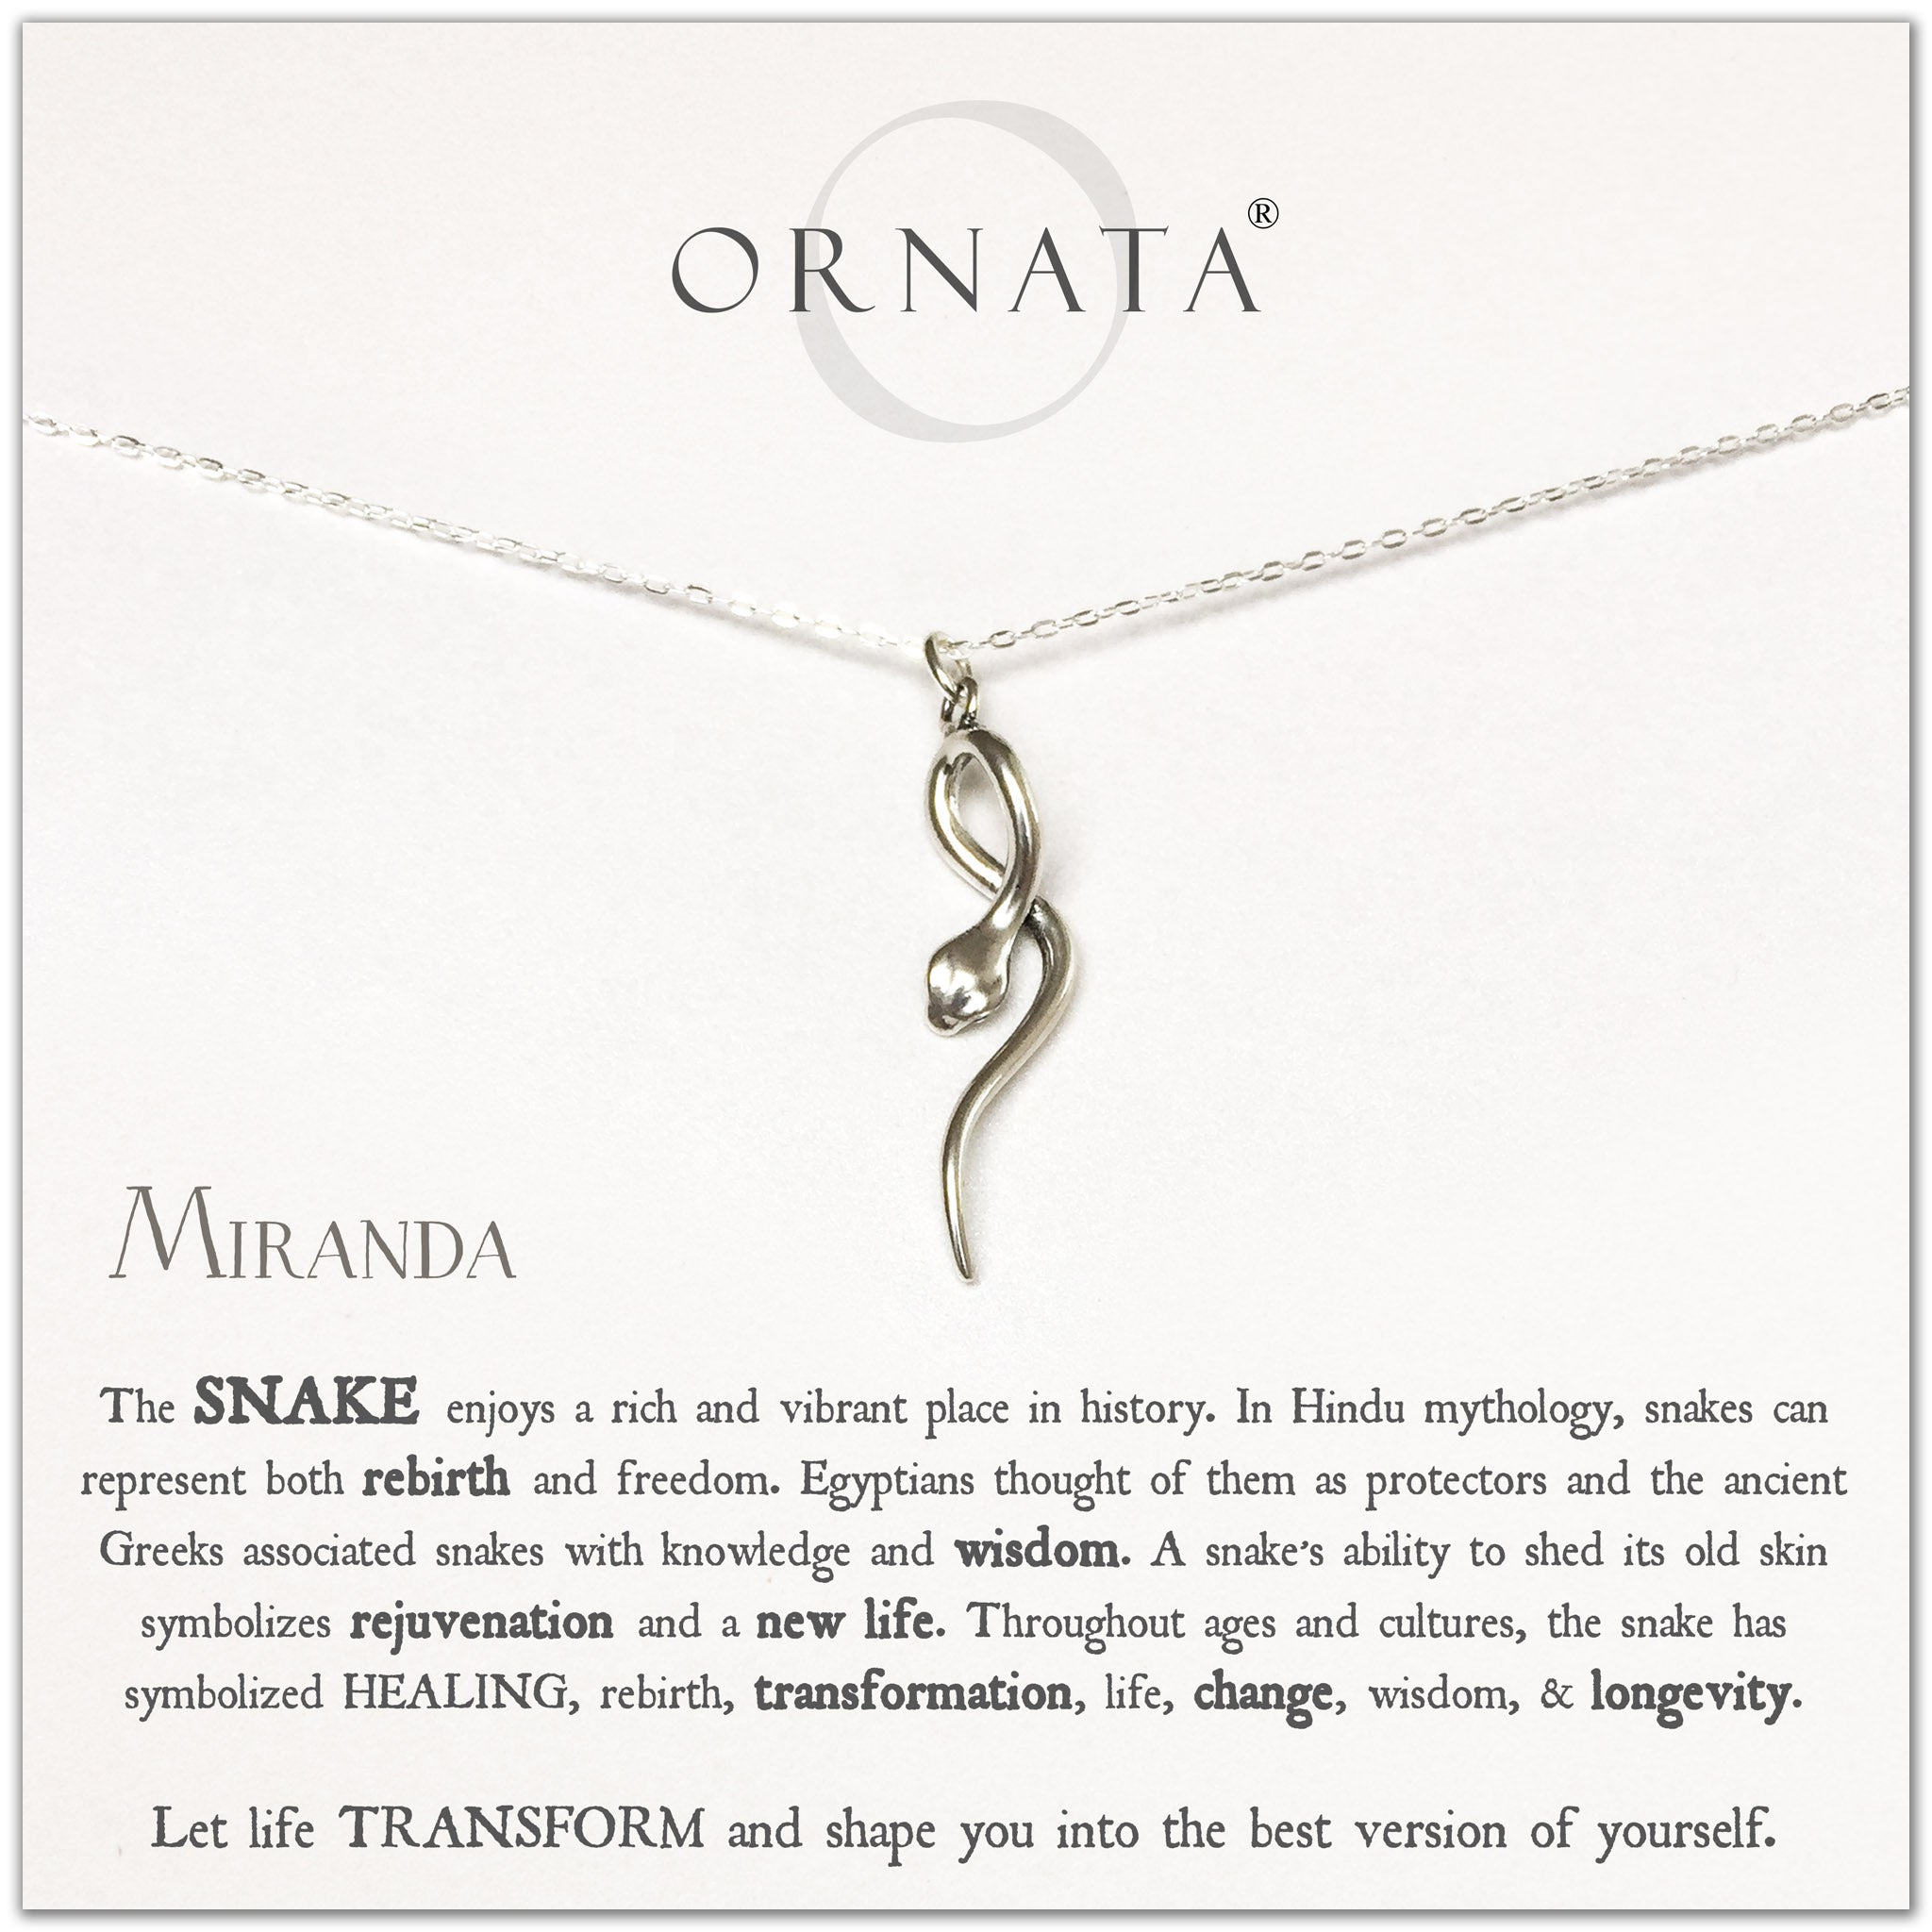 Snake necklace - personalized silver snake necklace. Our sterling silver custom jewelry is a perfect gift to symbolize longevity, change, and transformation or a gift for those who love snakes.